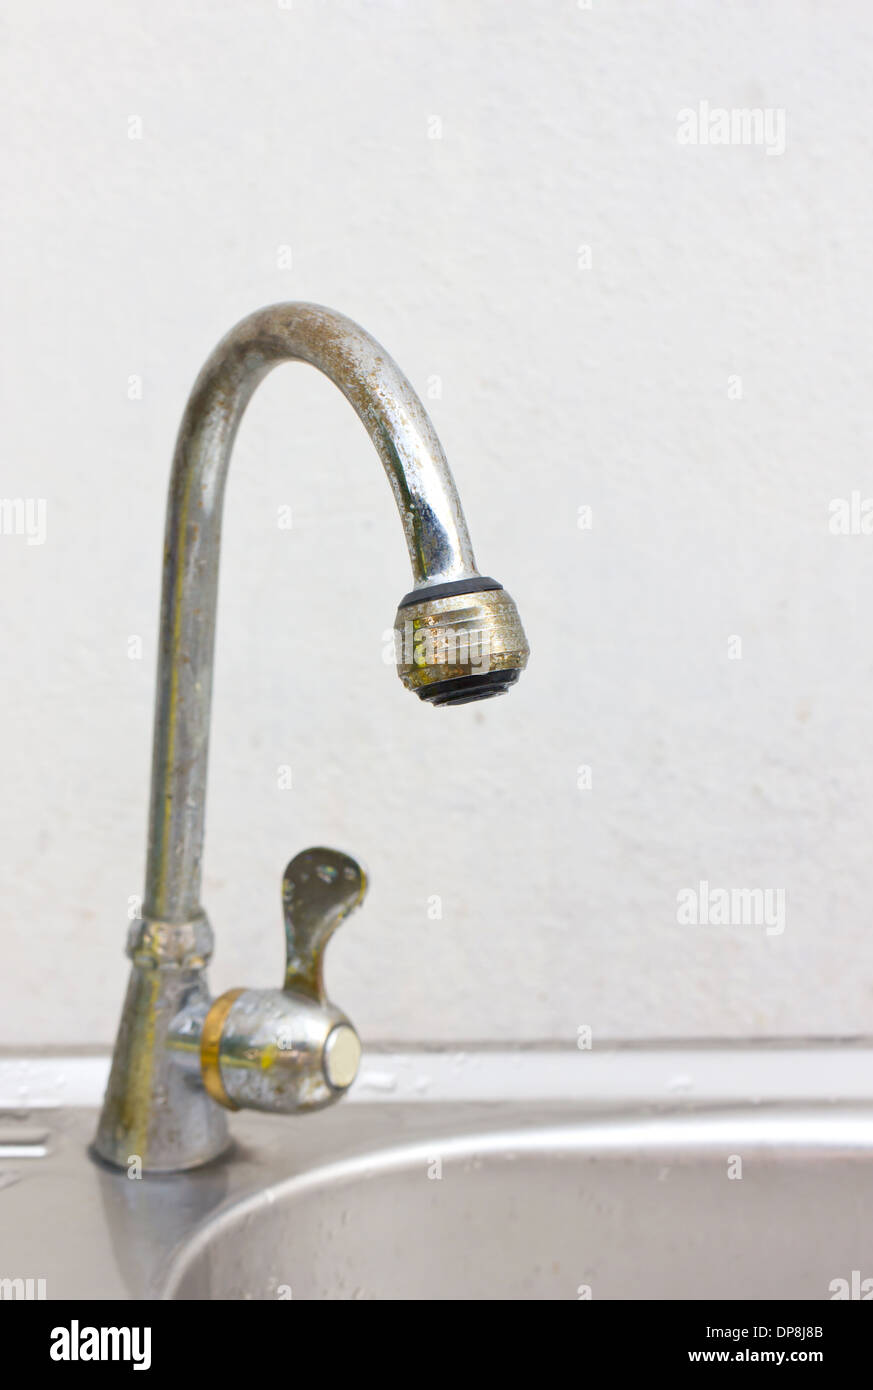 Old and dirty kitchen faucet and sink Stock Photo: 65343499 - Alamy